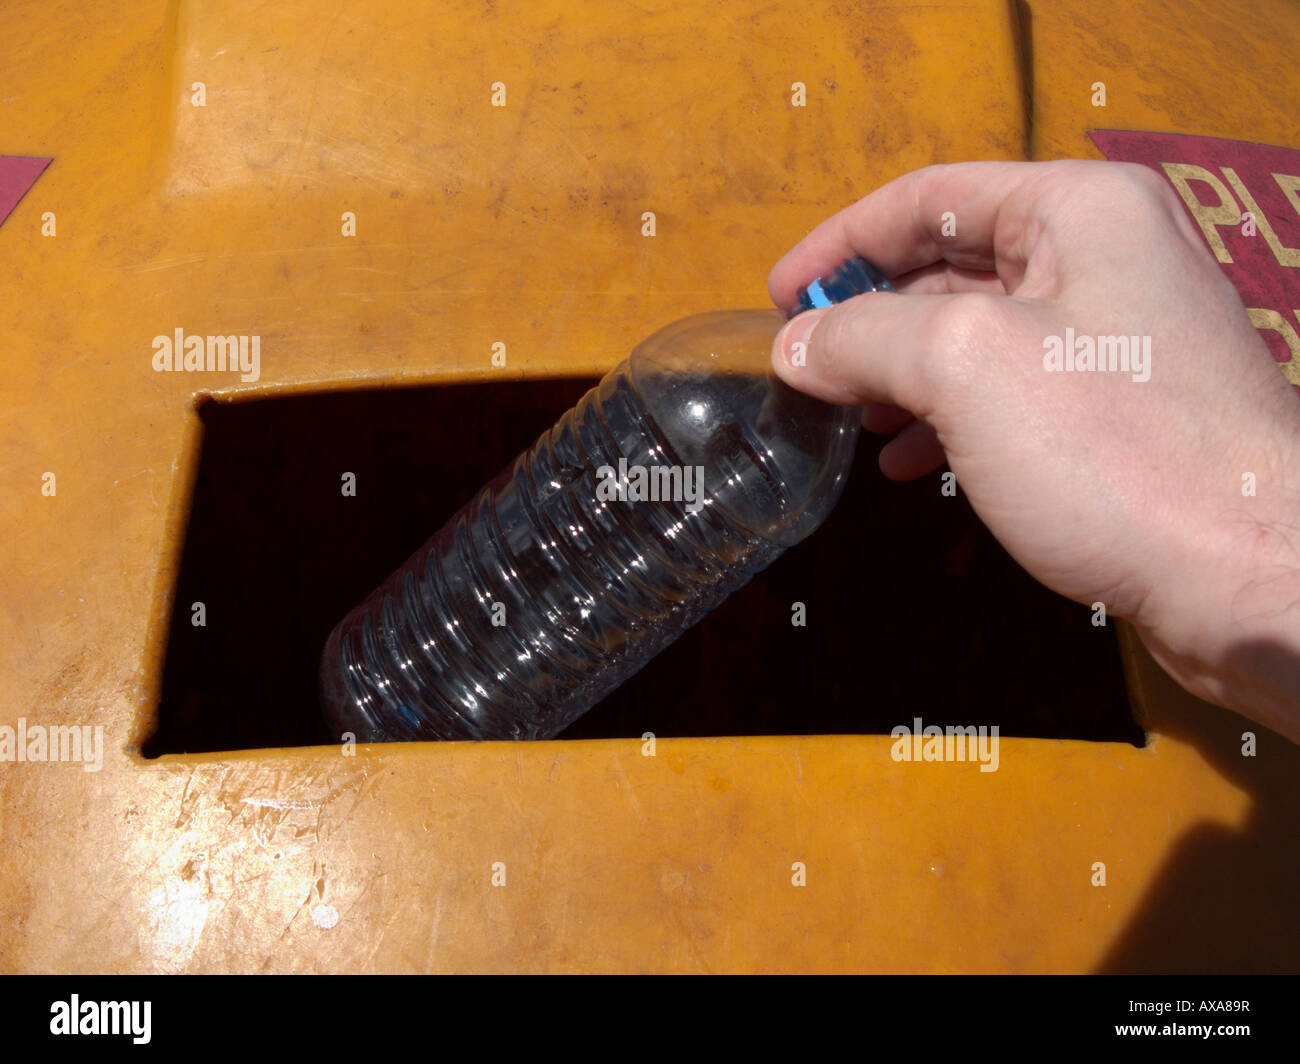 mans hand placing a recyclable empty clean plastic bottle in a recycling bin at recycling depot Stock Photo